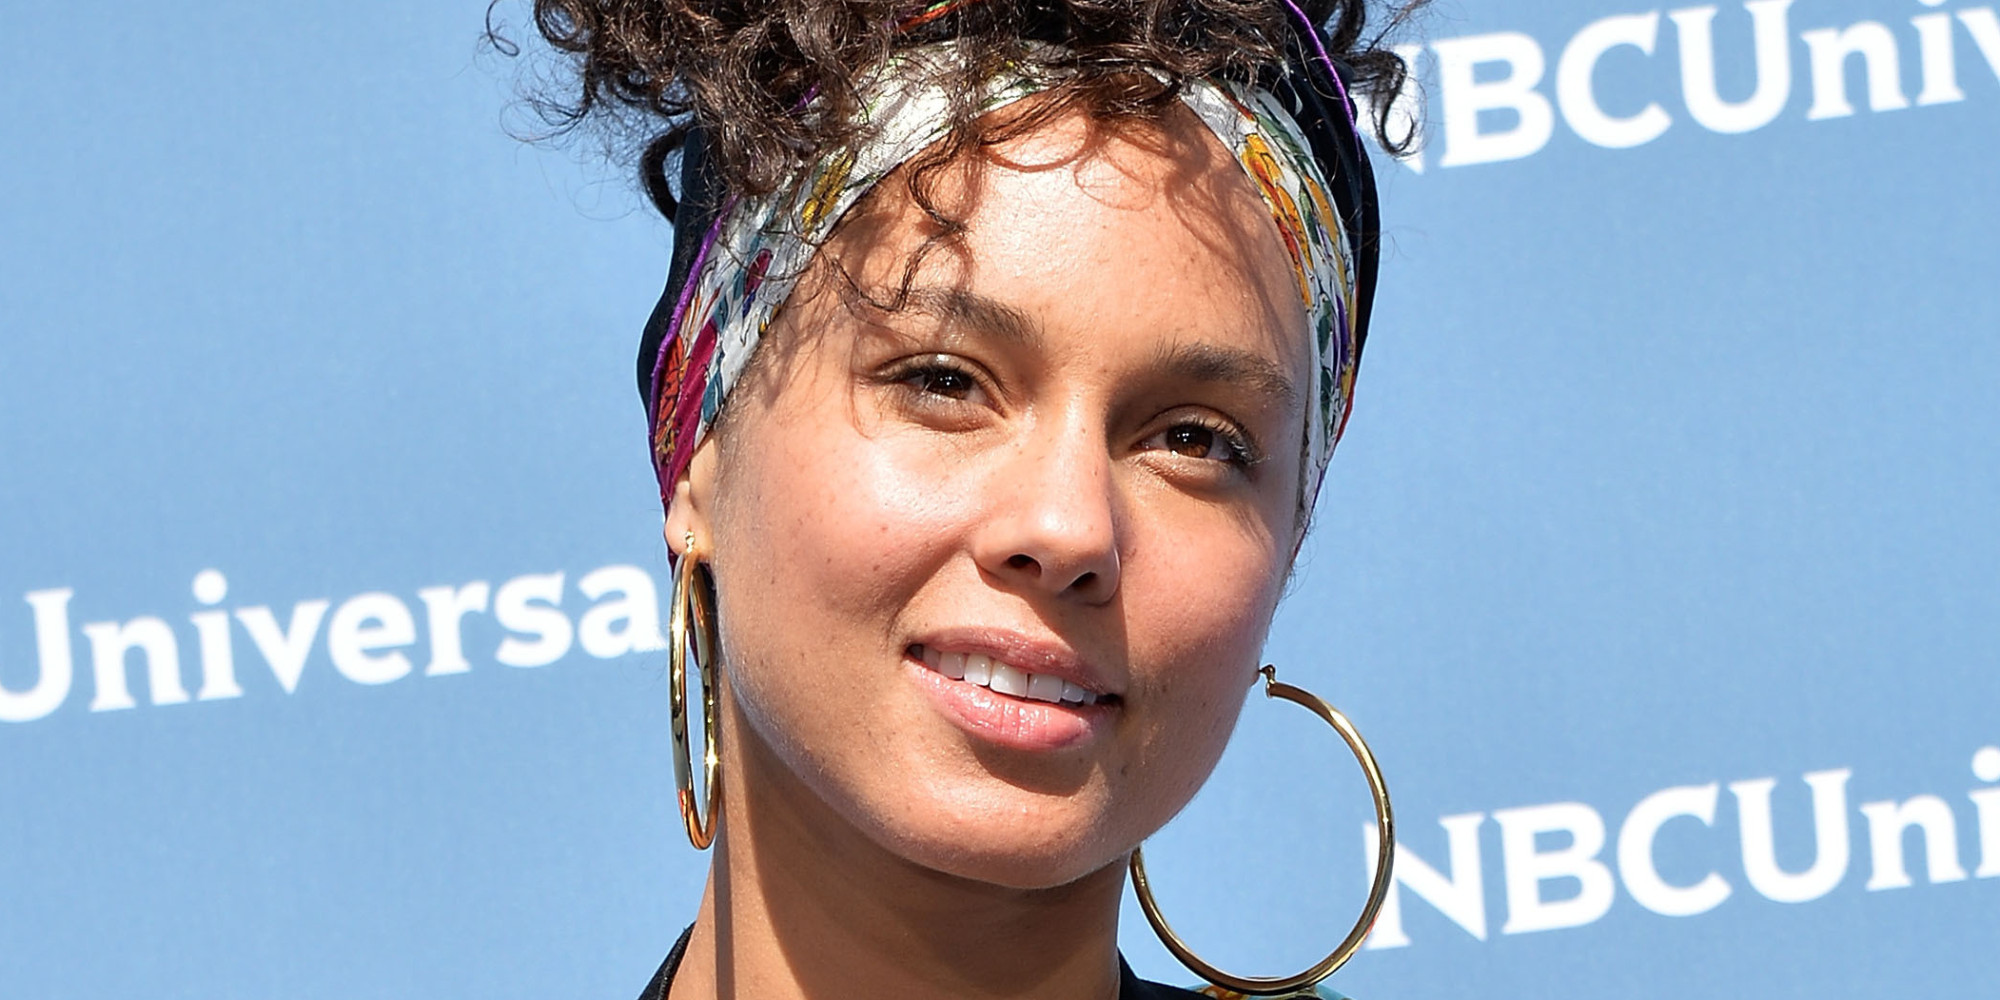 alicia keys shares makeup photo in essay published on lena alicia keys shares makeup photo in essay published on lena dunham s newsletter